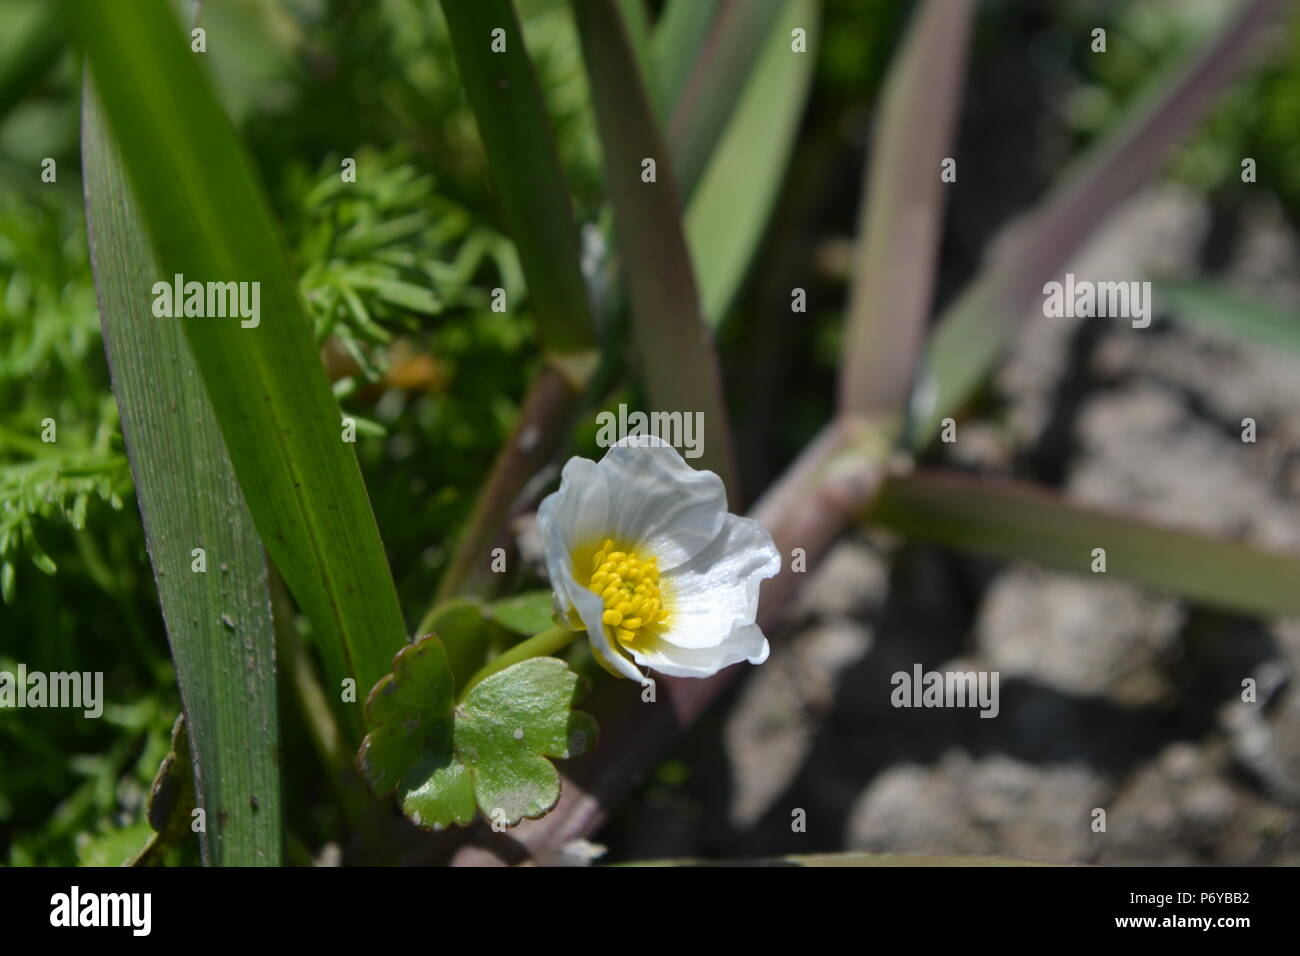 Ranunculus peltatus, with leaf, a Water-crowfoot in the southern England sunshine - Stock Image